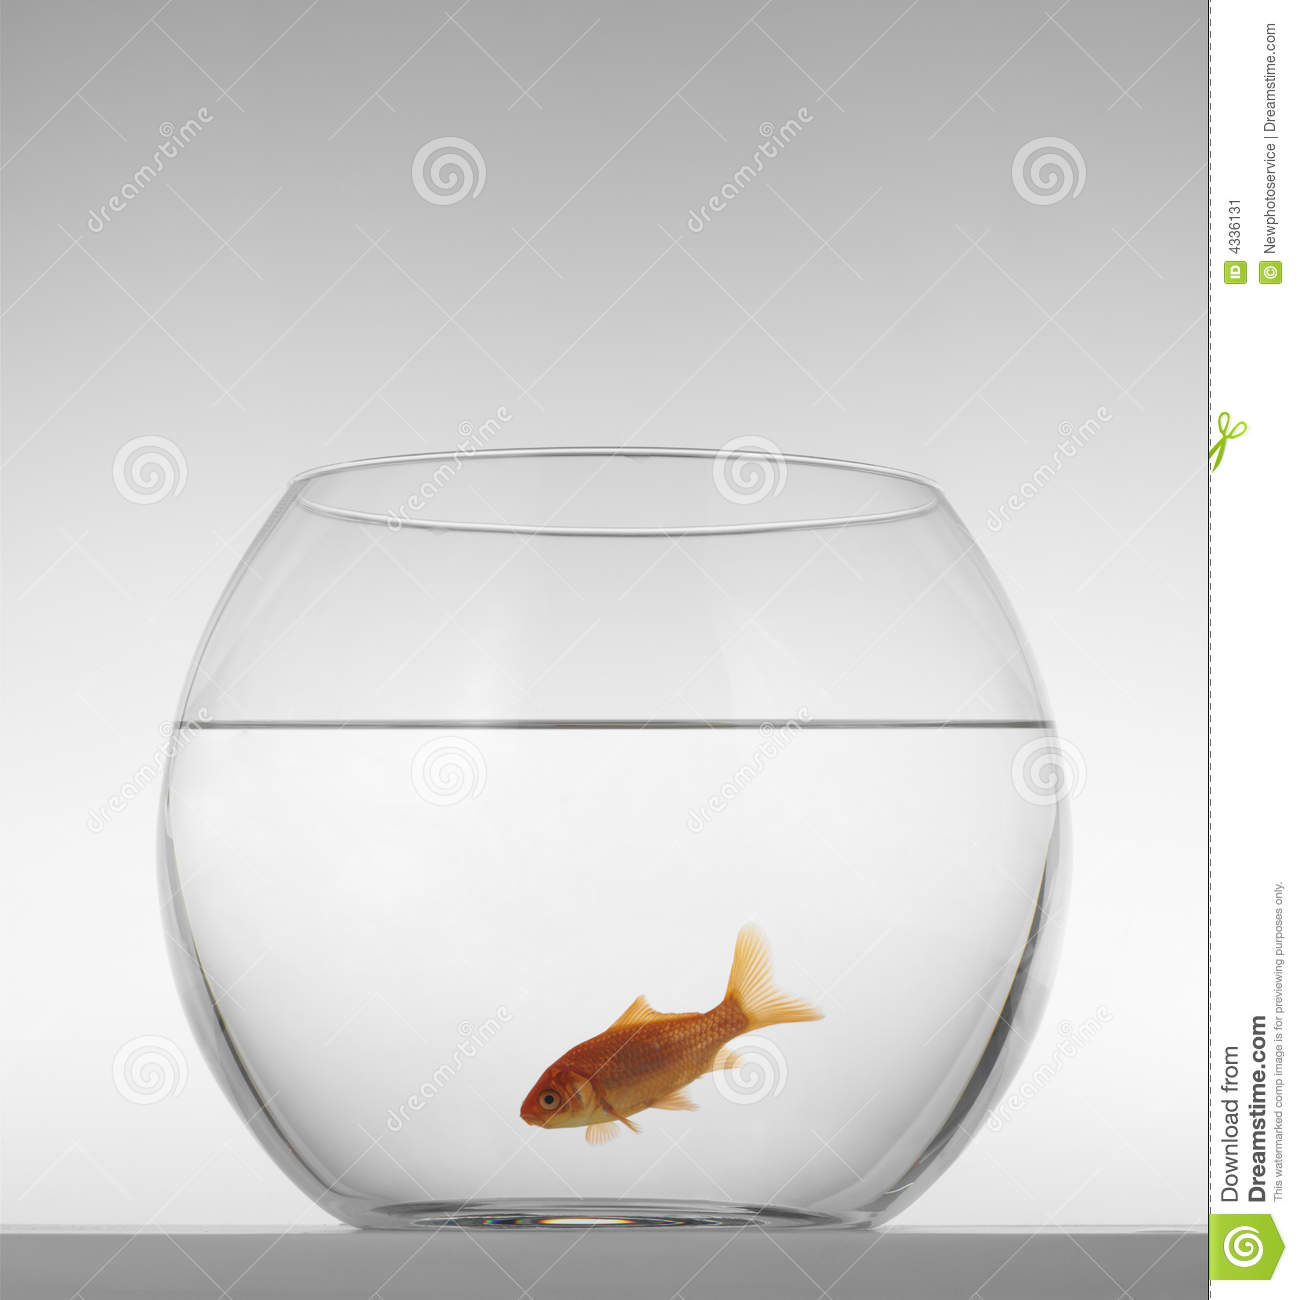 Red fish in an aquarium on a white background